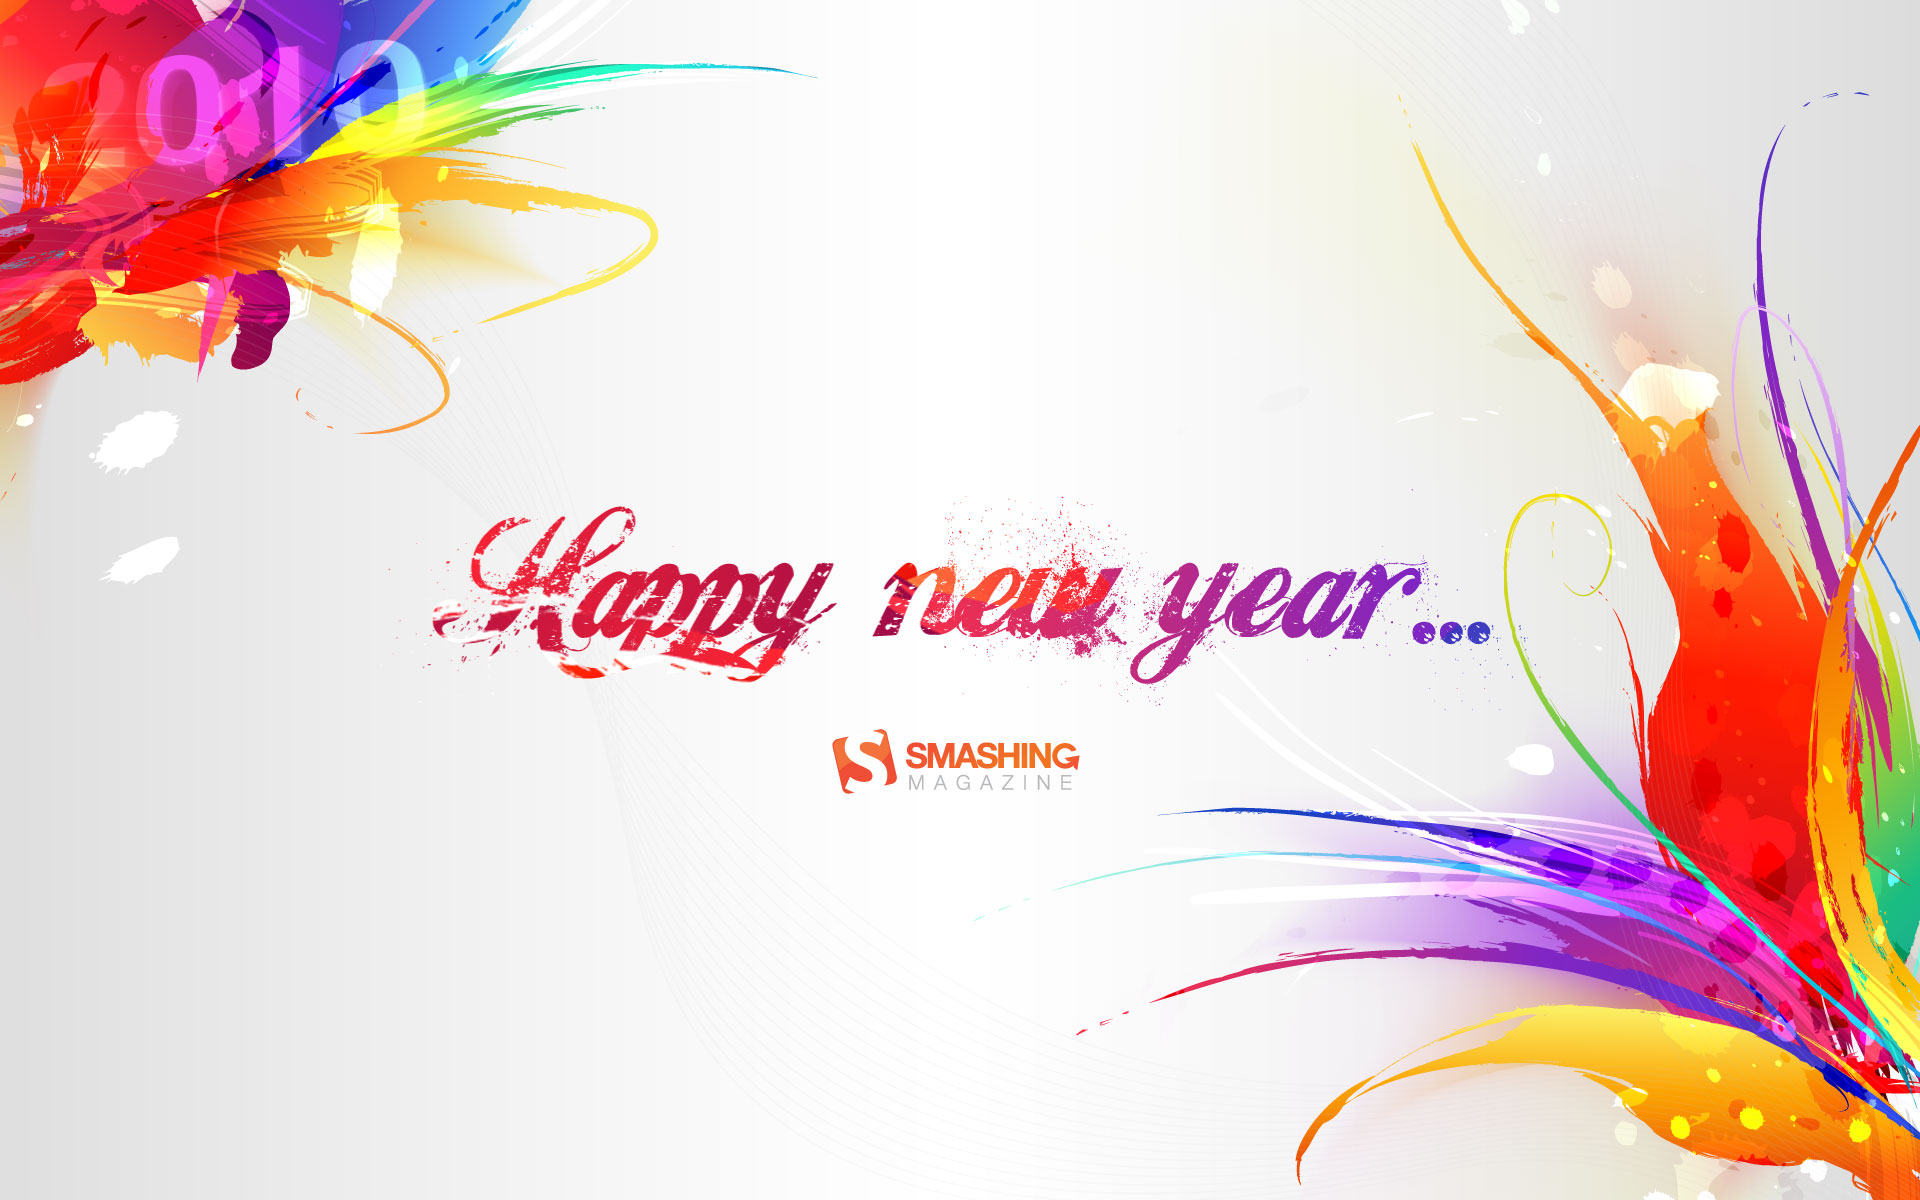 New Year Wallpapers for Desktop Happy New Year Wallpapers download 1920x1200